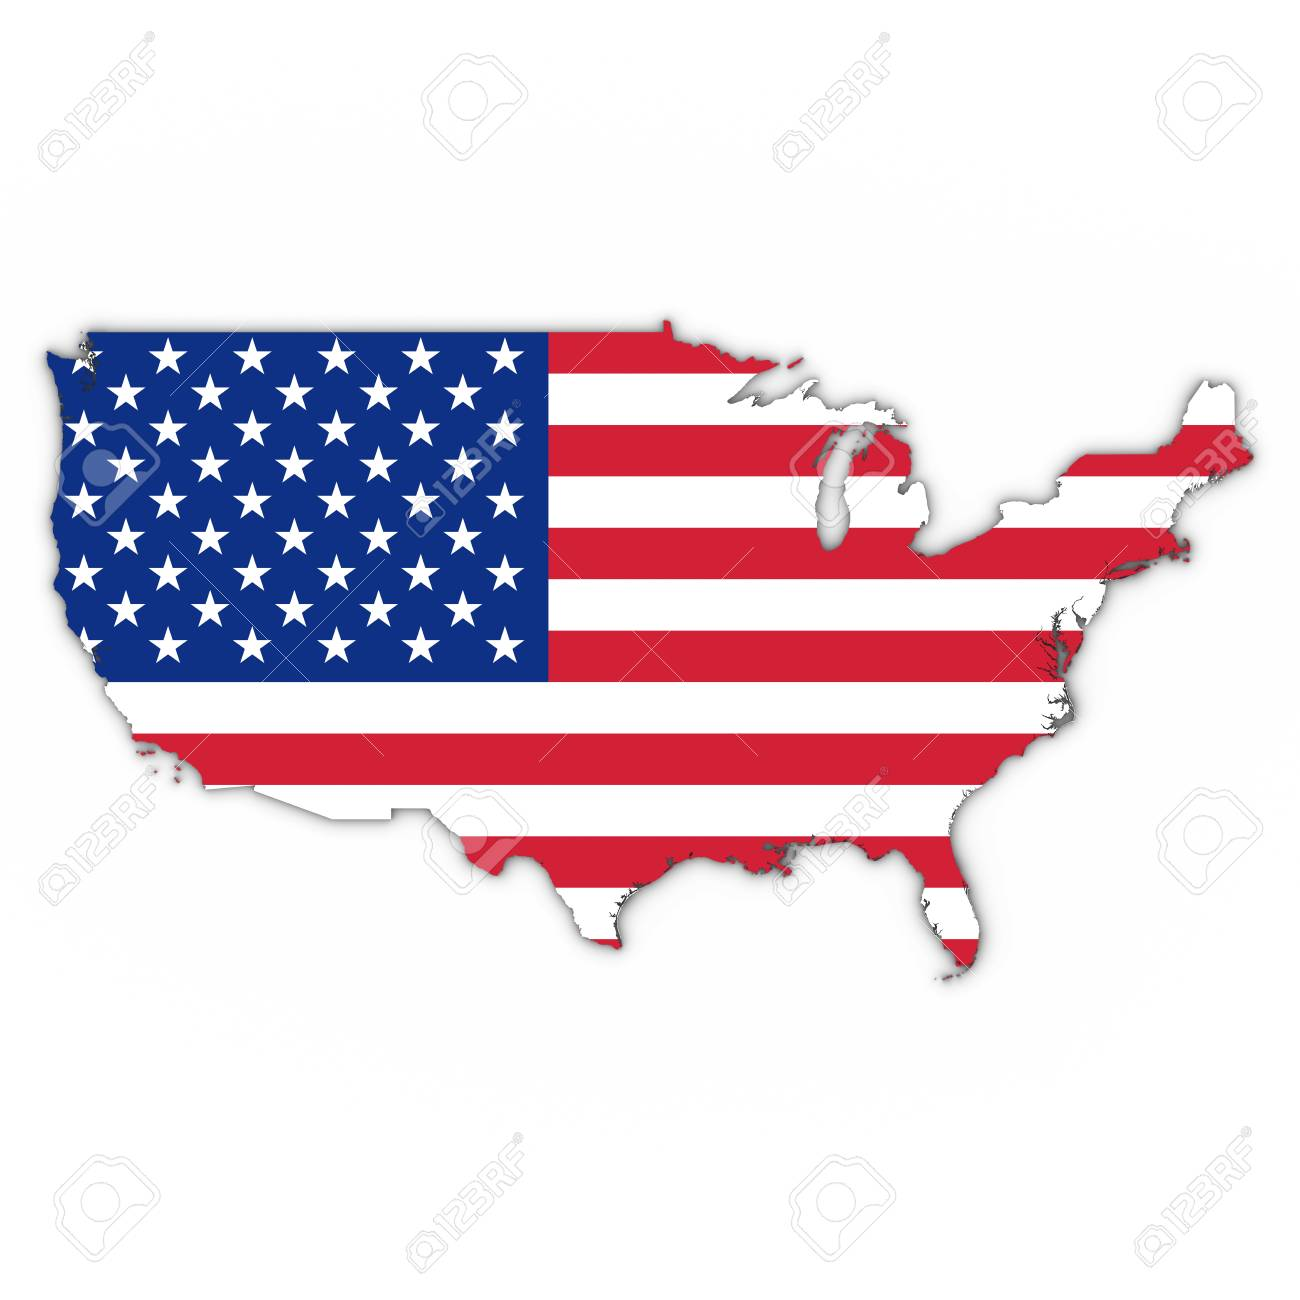 American Flag Us Map United States Map Outline With American Flag On White With Shadows